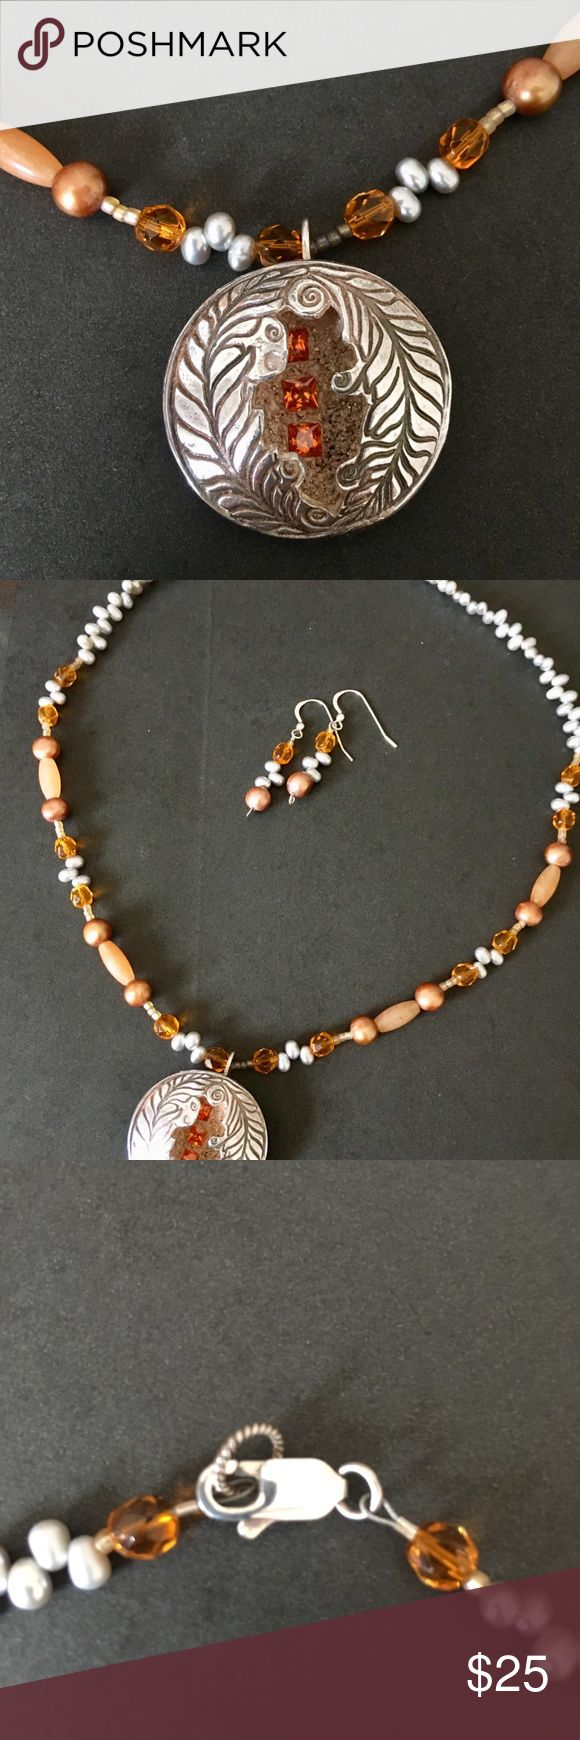 """Unique Beaded Pearl Necklace/Earrings Sterling Slv Part of my grandmother's collection, very unique. Jeweler verified necklace is sterling silver with freshwater pearls. Various size and shape orange beads. The pendant is sterling silver with orange beads inset. Measures just about 11"""" long. Pendant is about 1.25"""" around. Earrings are made of same beads and pearls, have 1.5"""" drop. There are 8 extra pearls included. A nicely made set, conversation starter! Jewelry Necklaces"""